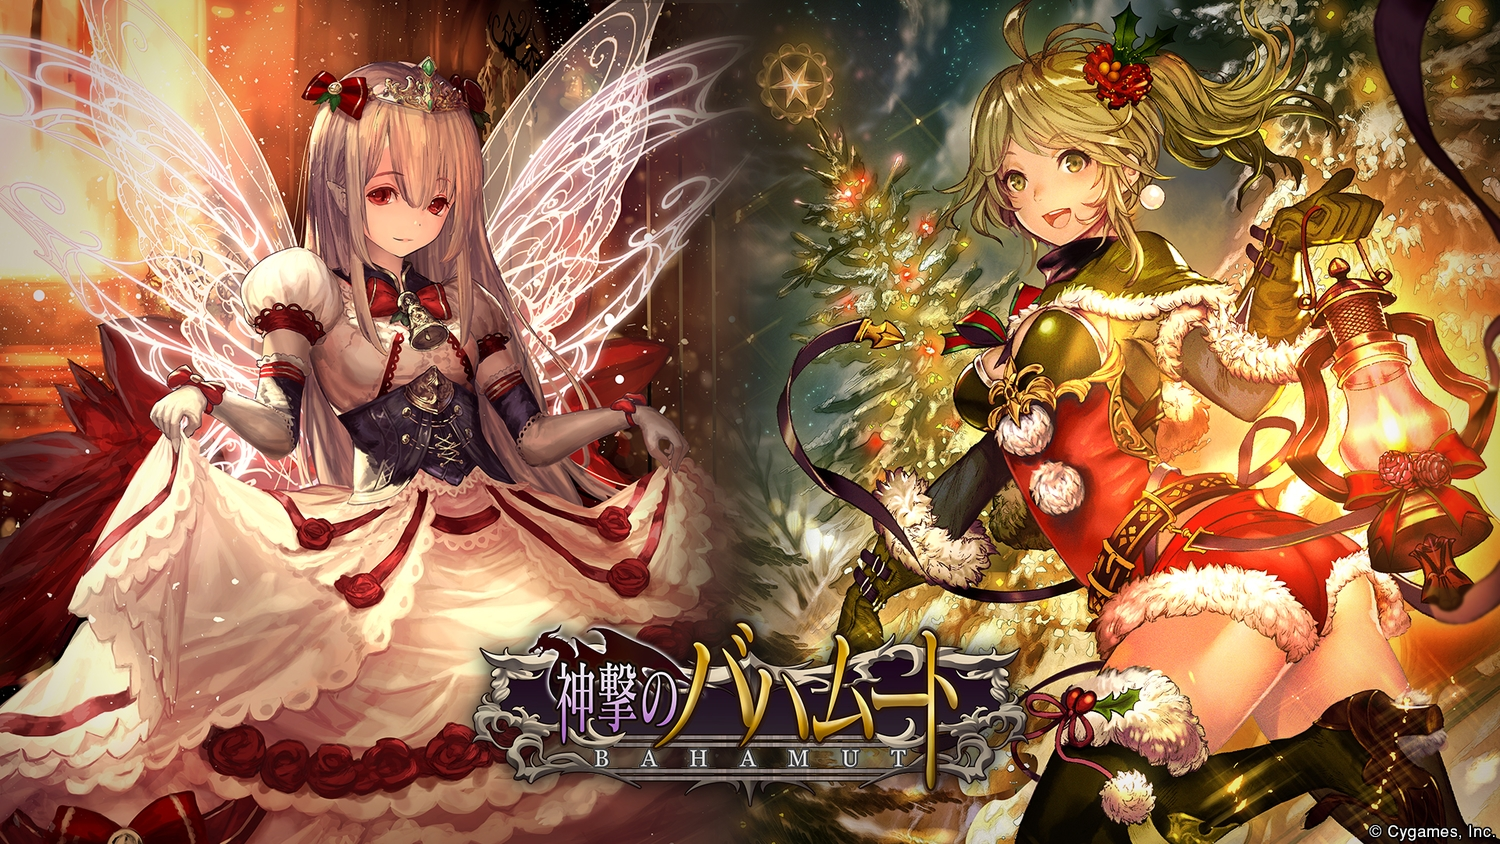 2girls armor ass breasts christmas cleavage dress lee_hyeseung pointed_ears shingeki_no_bahamut skirt_lift tagme_(character) thighhighs watermark wings